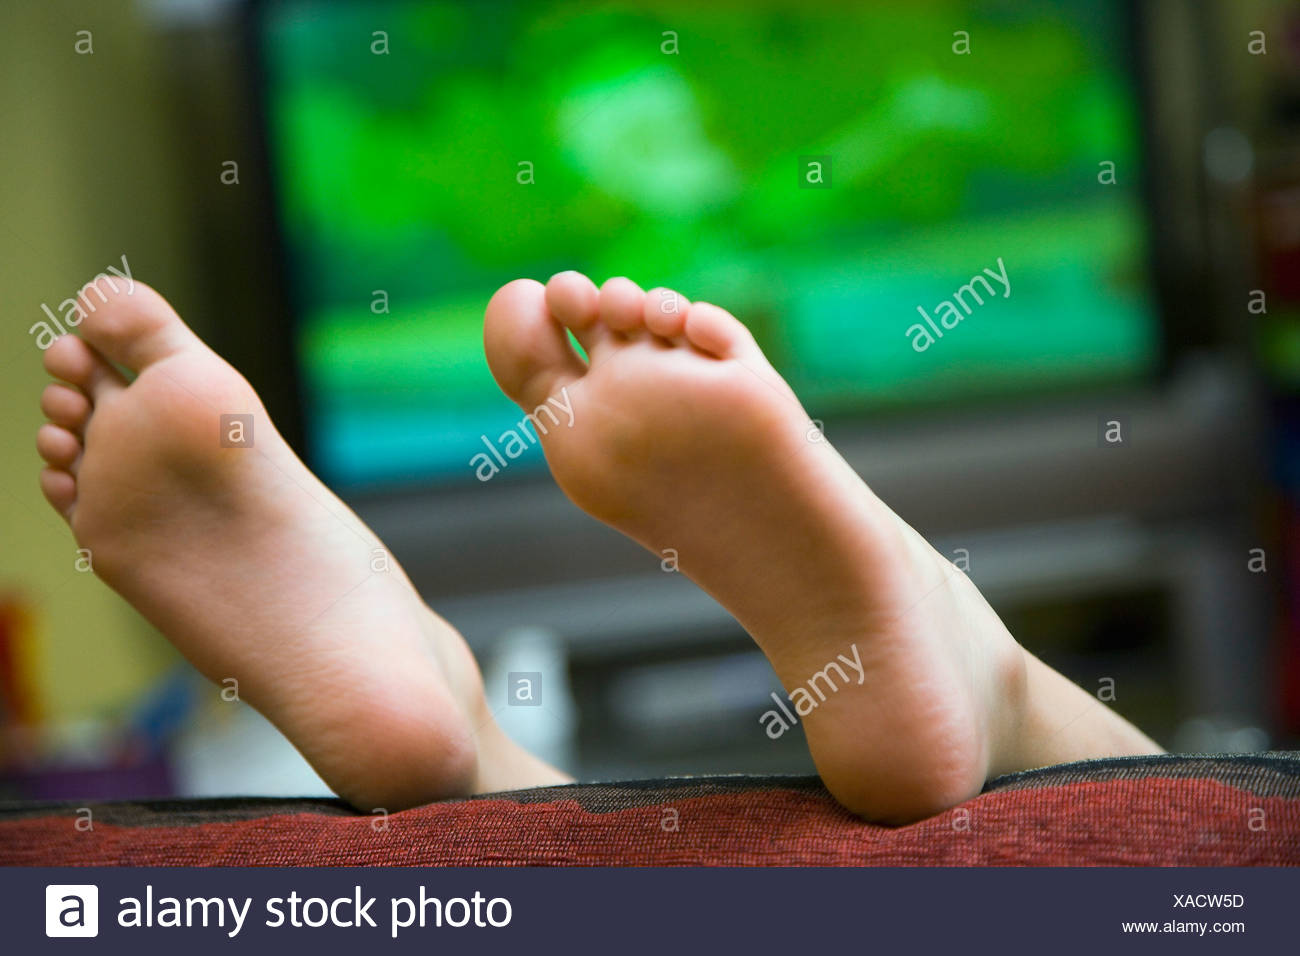 finest selection 68ee6 d6c85 Child lying on sofa with feet in air